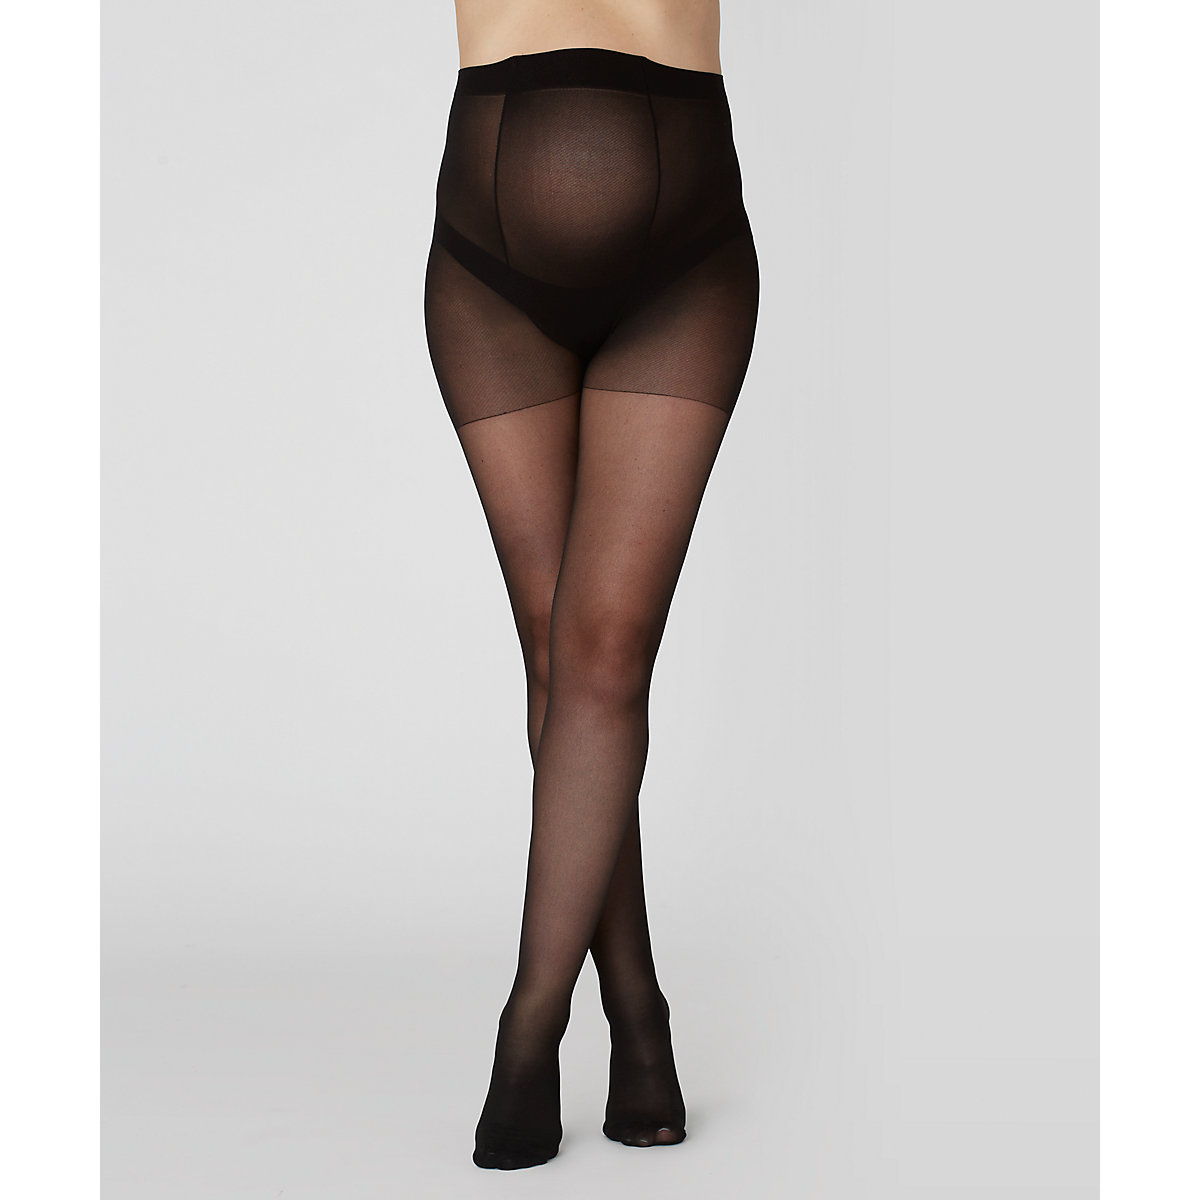 Blooming Marvellous Maternity 20 Denier Support Tights